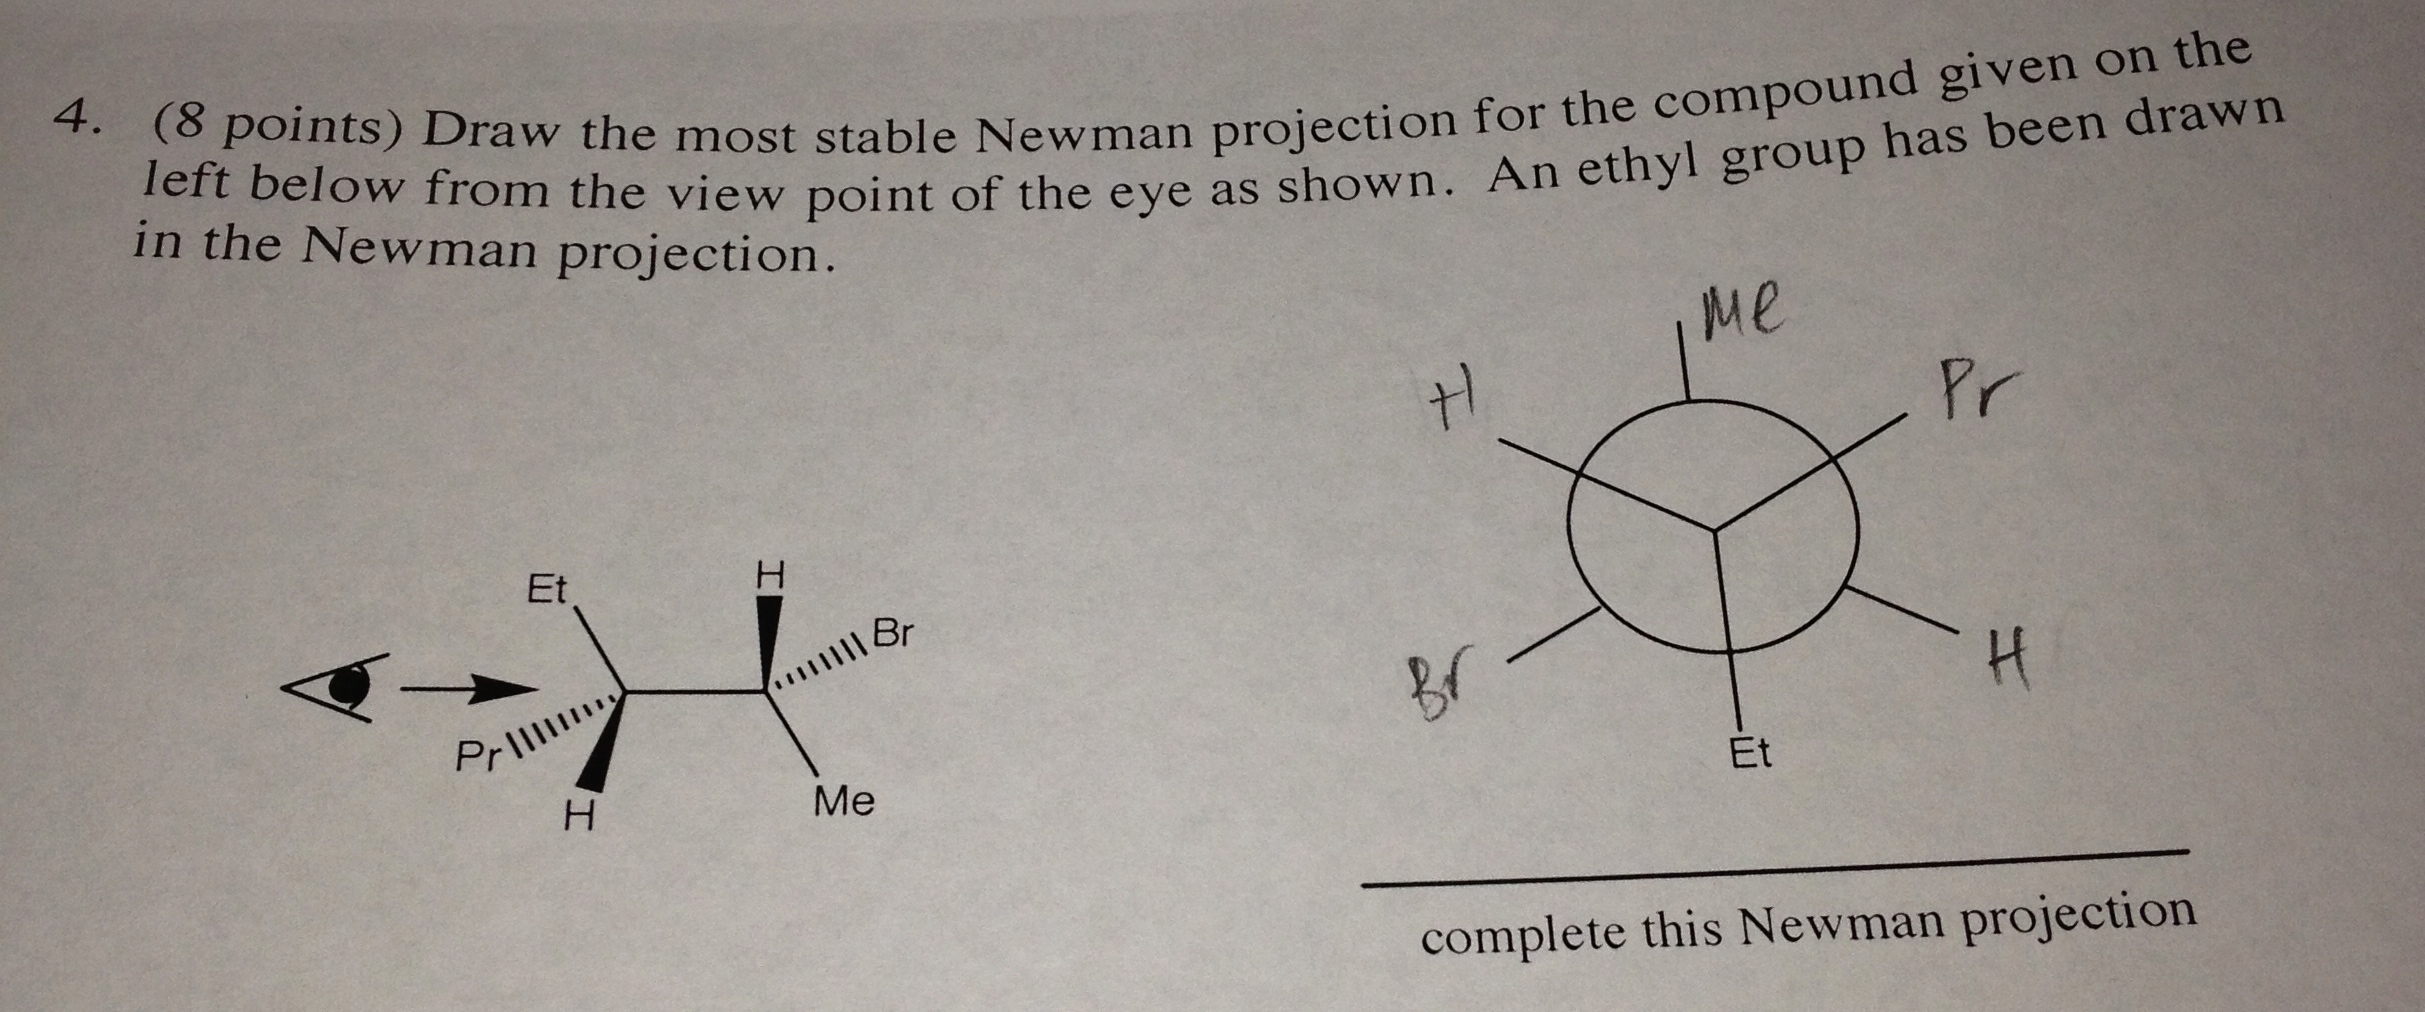 how to draw a compound in newman projection